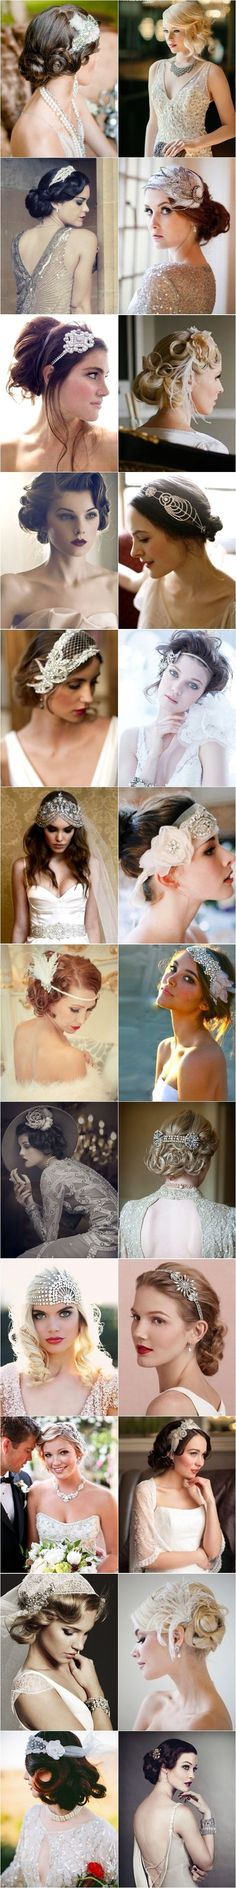 """Wedding Philippines - 1920s Gatsby Glam Inspired Hairstyles"" Tons of ideas for our hair for your future Gatsby-themed wedding! Lol @kaymac2012 (scheduled via http://www.tailwindapp.com?utm_source=pinterest&utm_medium=twpin&utm_content=post6397980&utm_campaign=scheduler_attribution)"